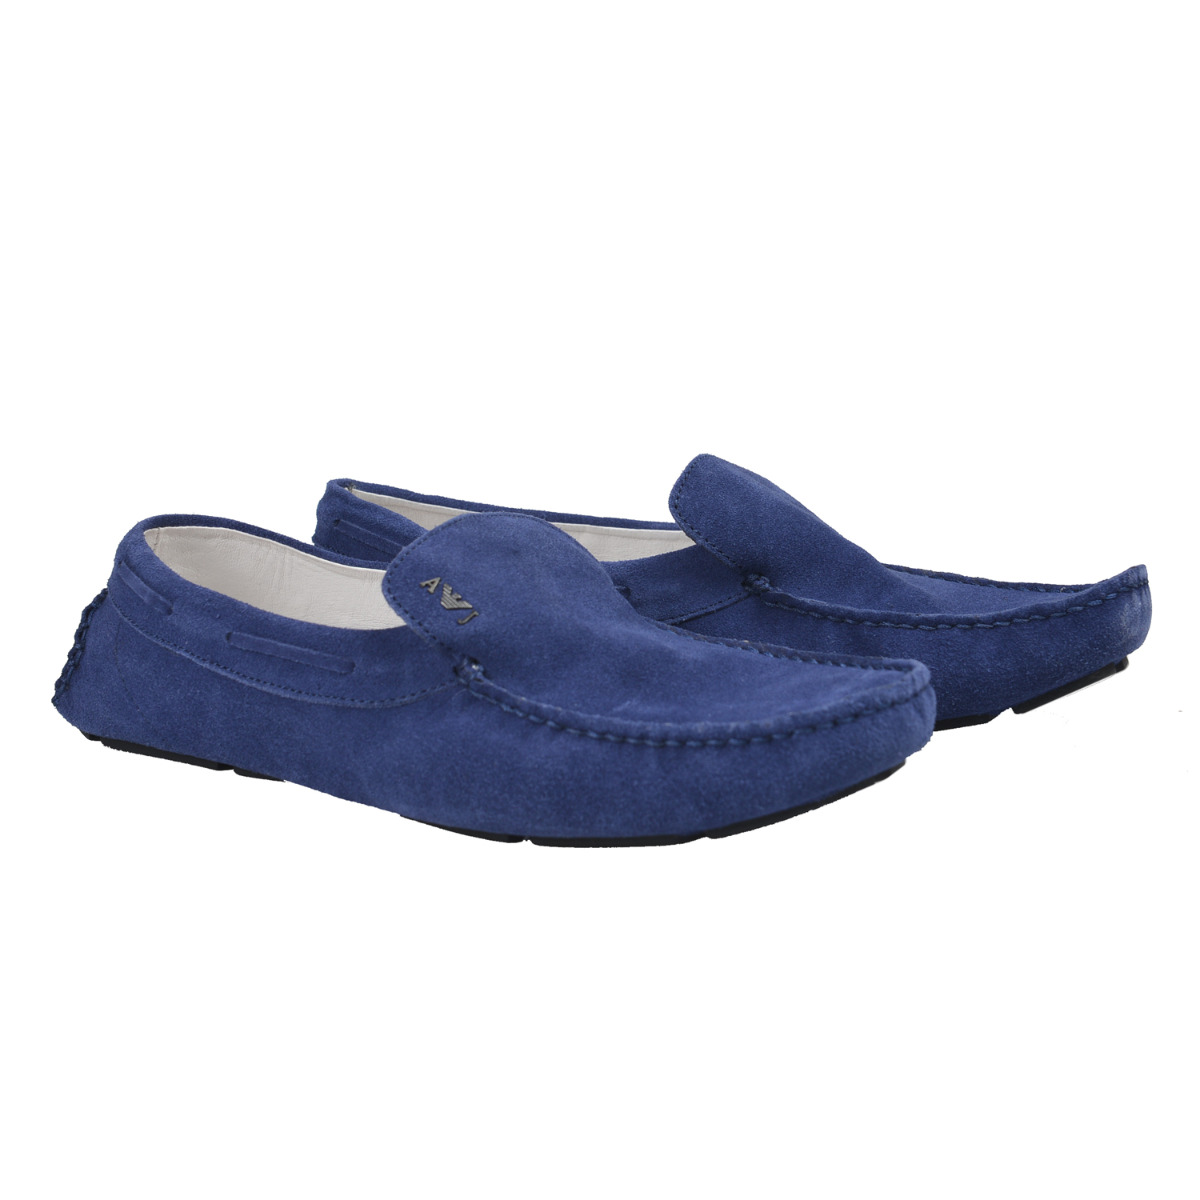 Armani Jeans Mens Blue Suede Loafers Moccasins Driving Shoes